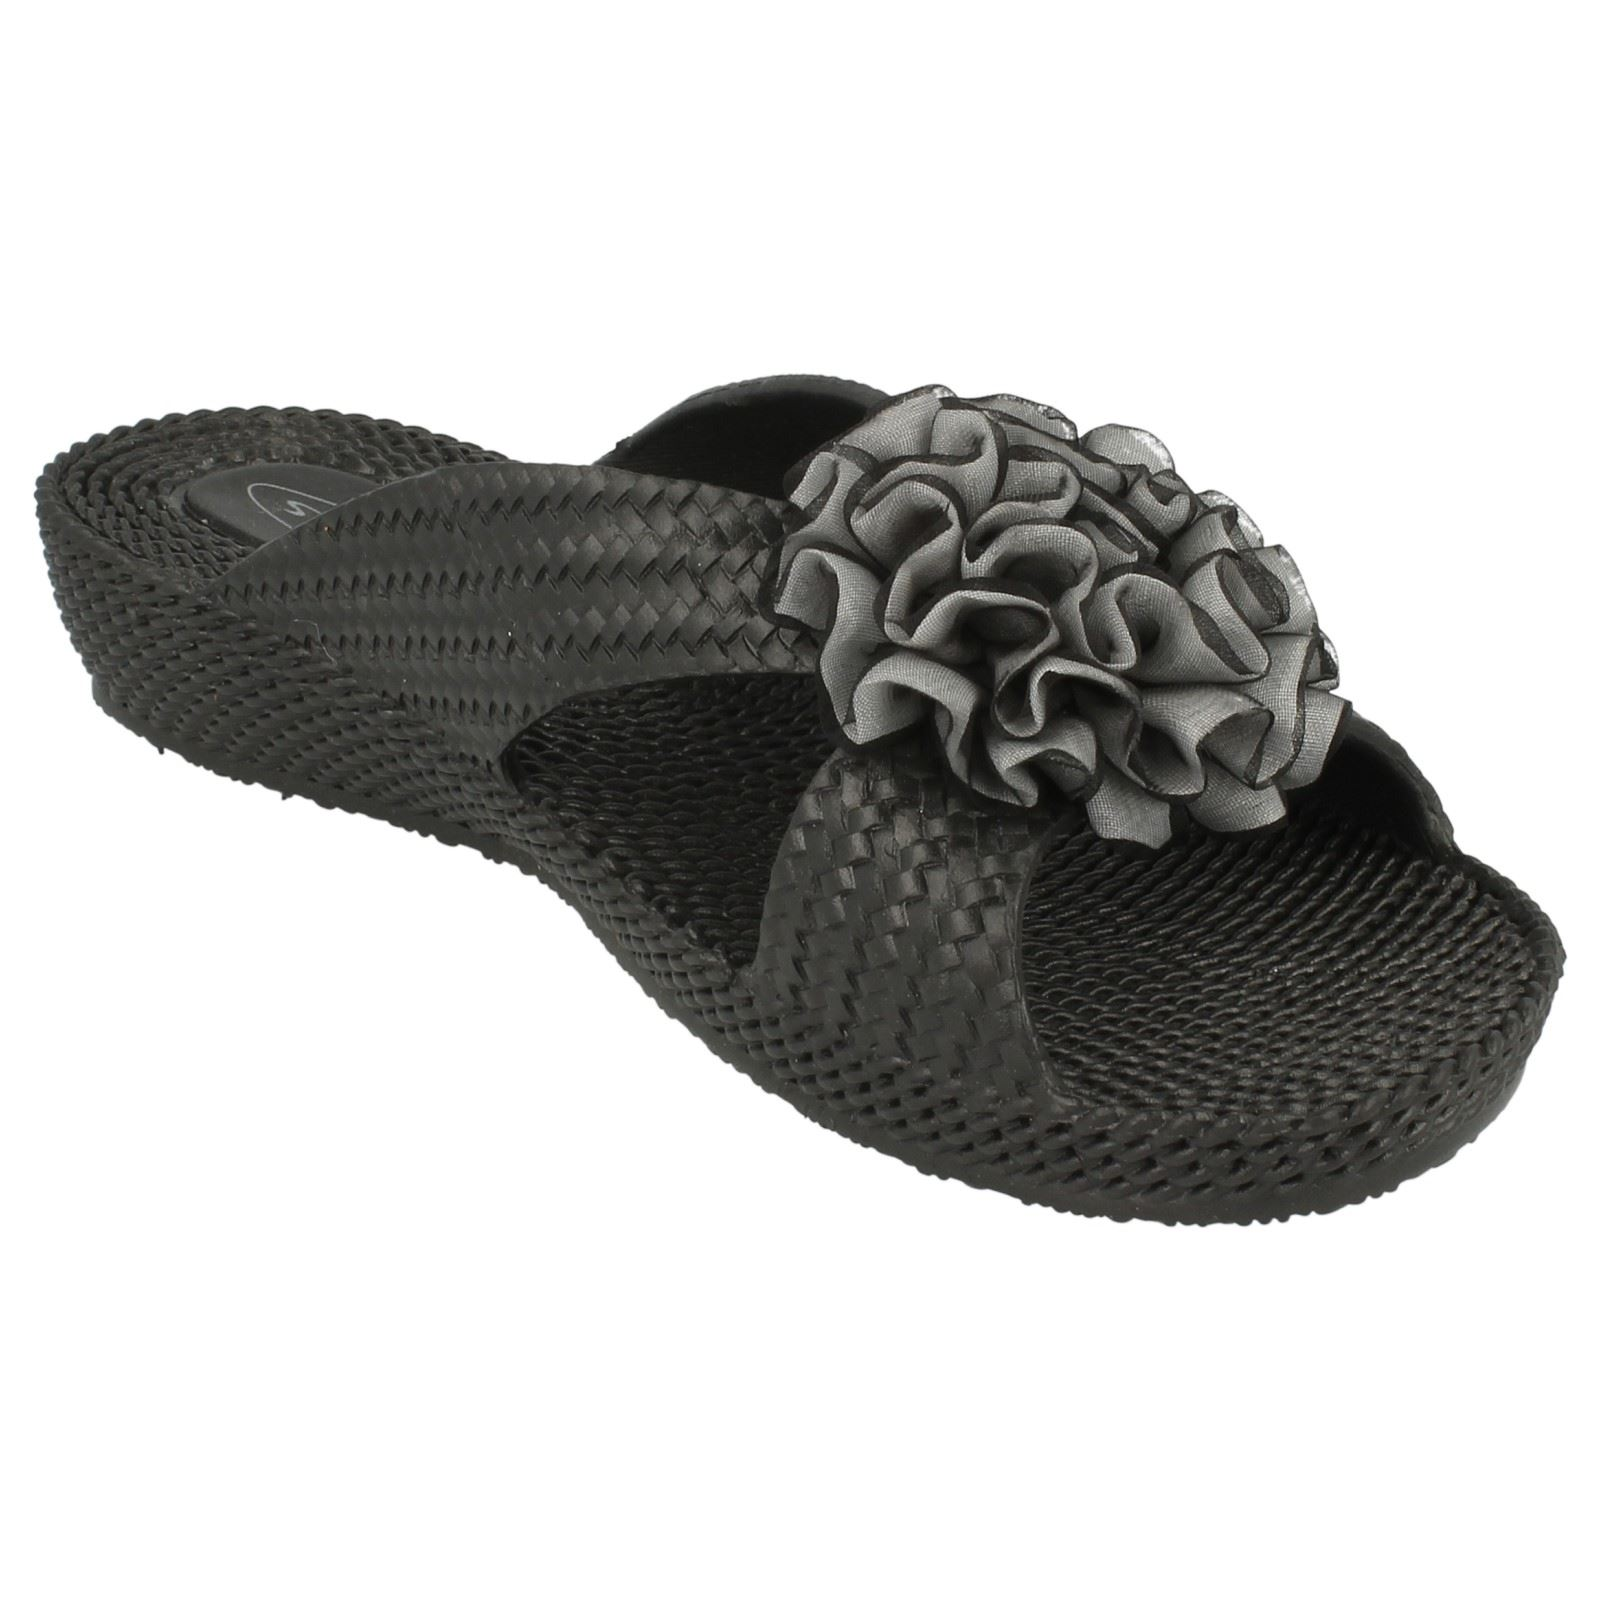 Spot on Damas Slip on Mediados de cuña Roseta Vamp Sandalias